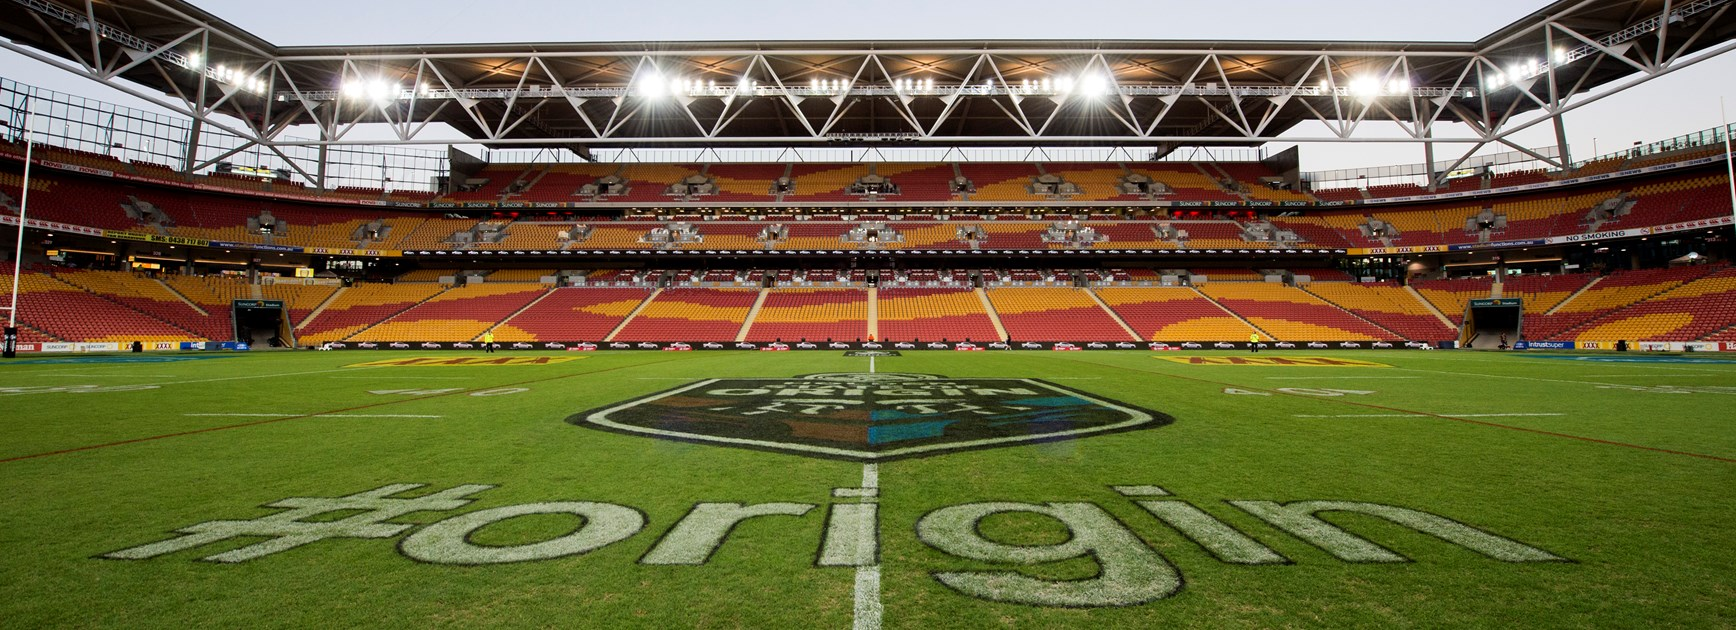 Brisbane Suncorp Stadium ahead of State of Origin I, 2017.